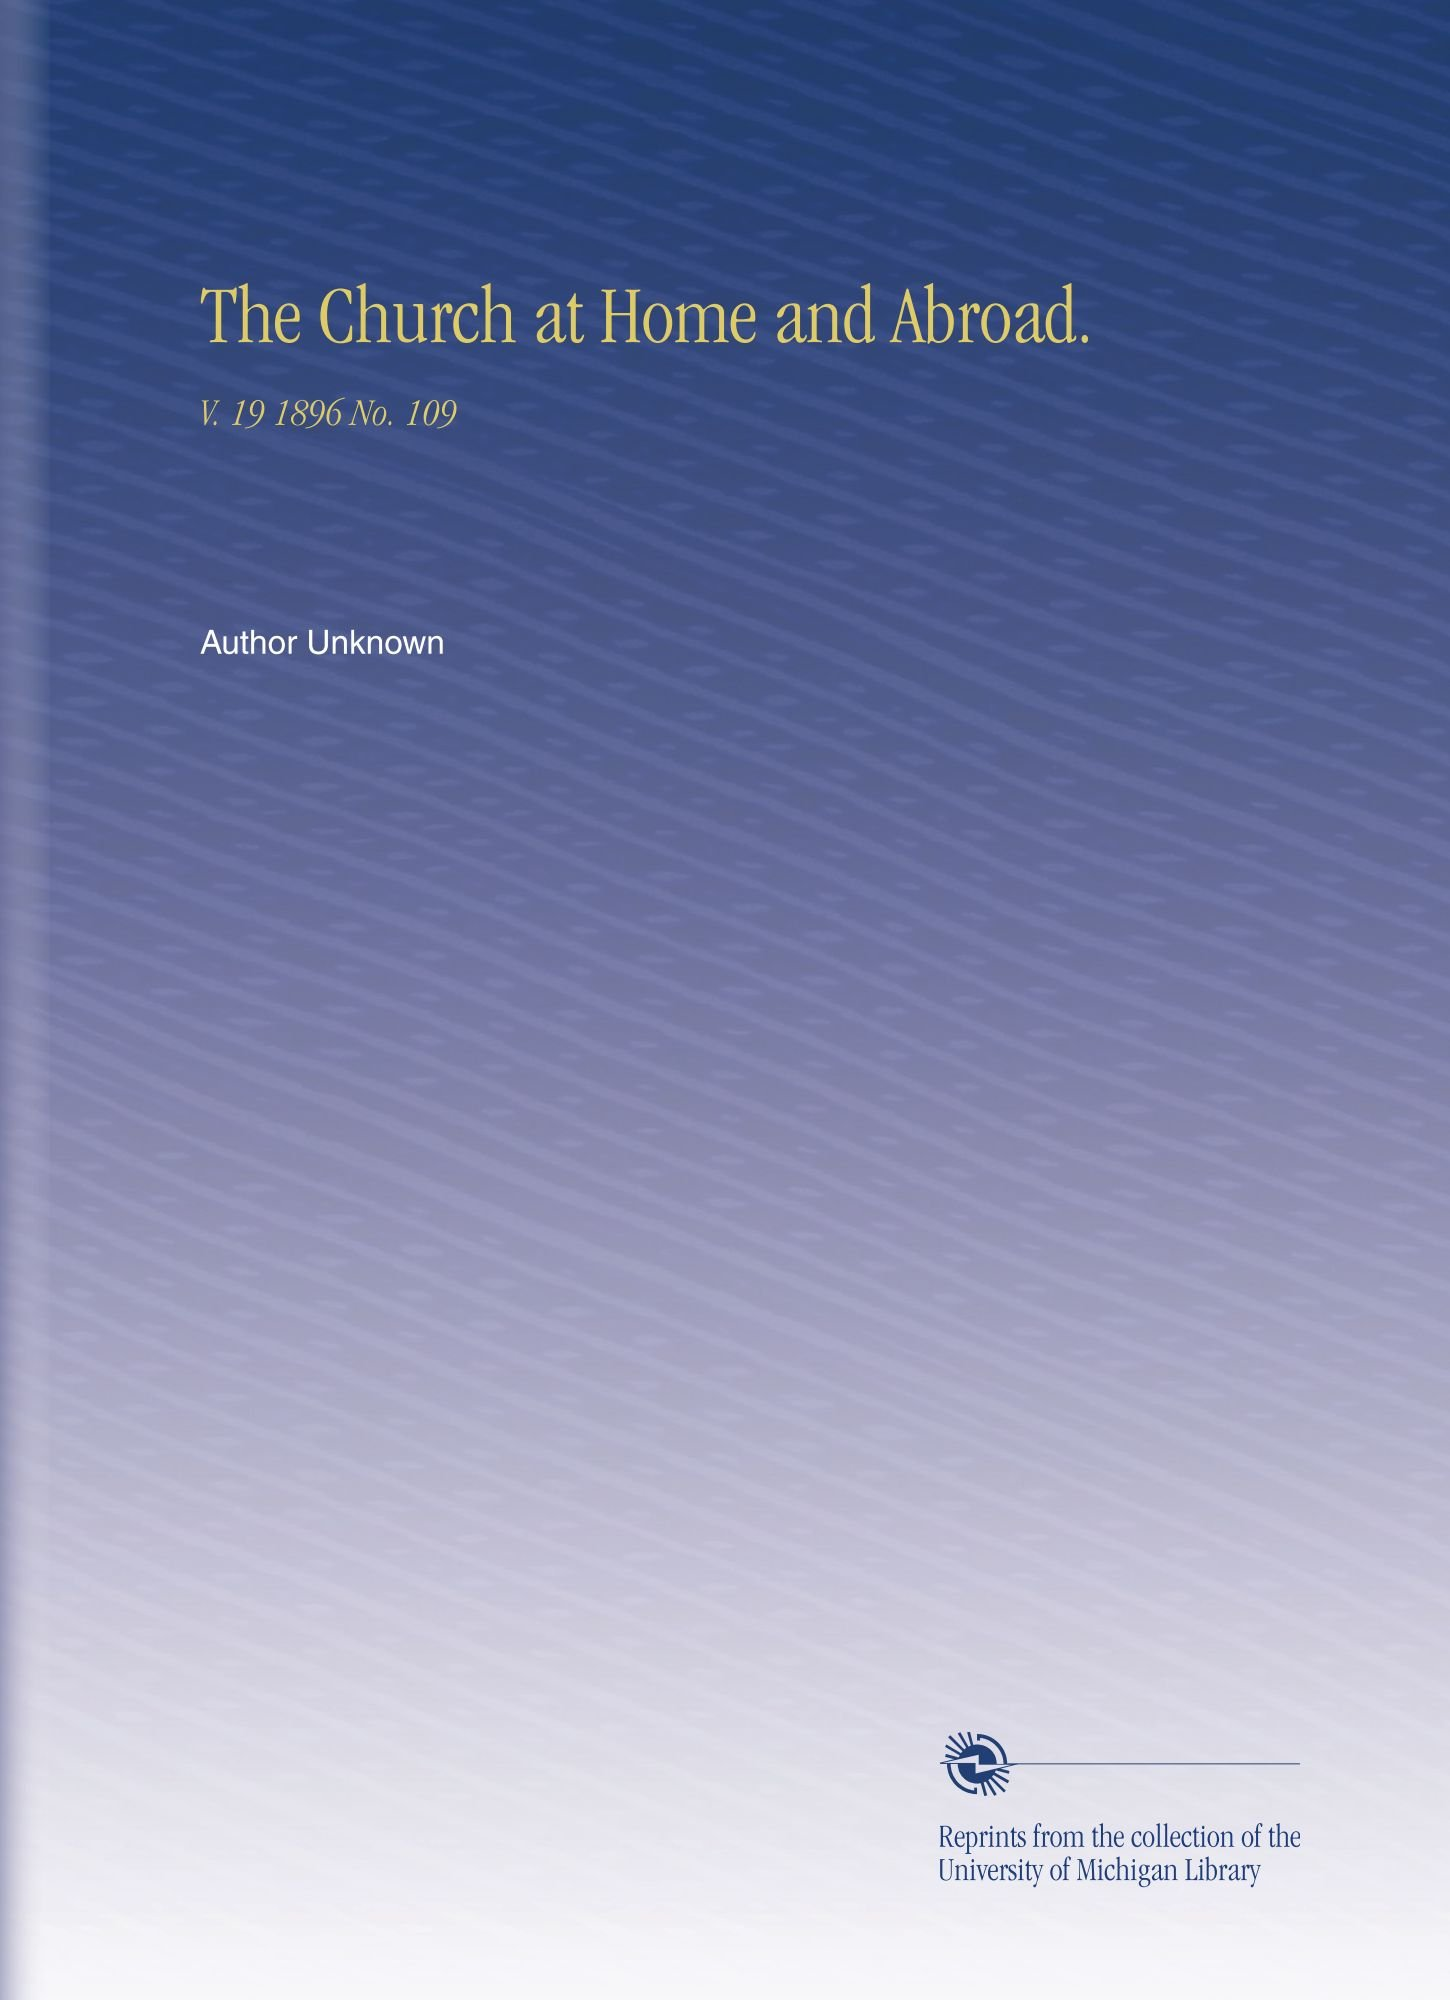 The Church at Home and Abroad.: V. 19 1896 No. 109 PDF